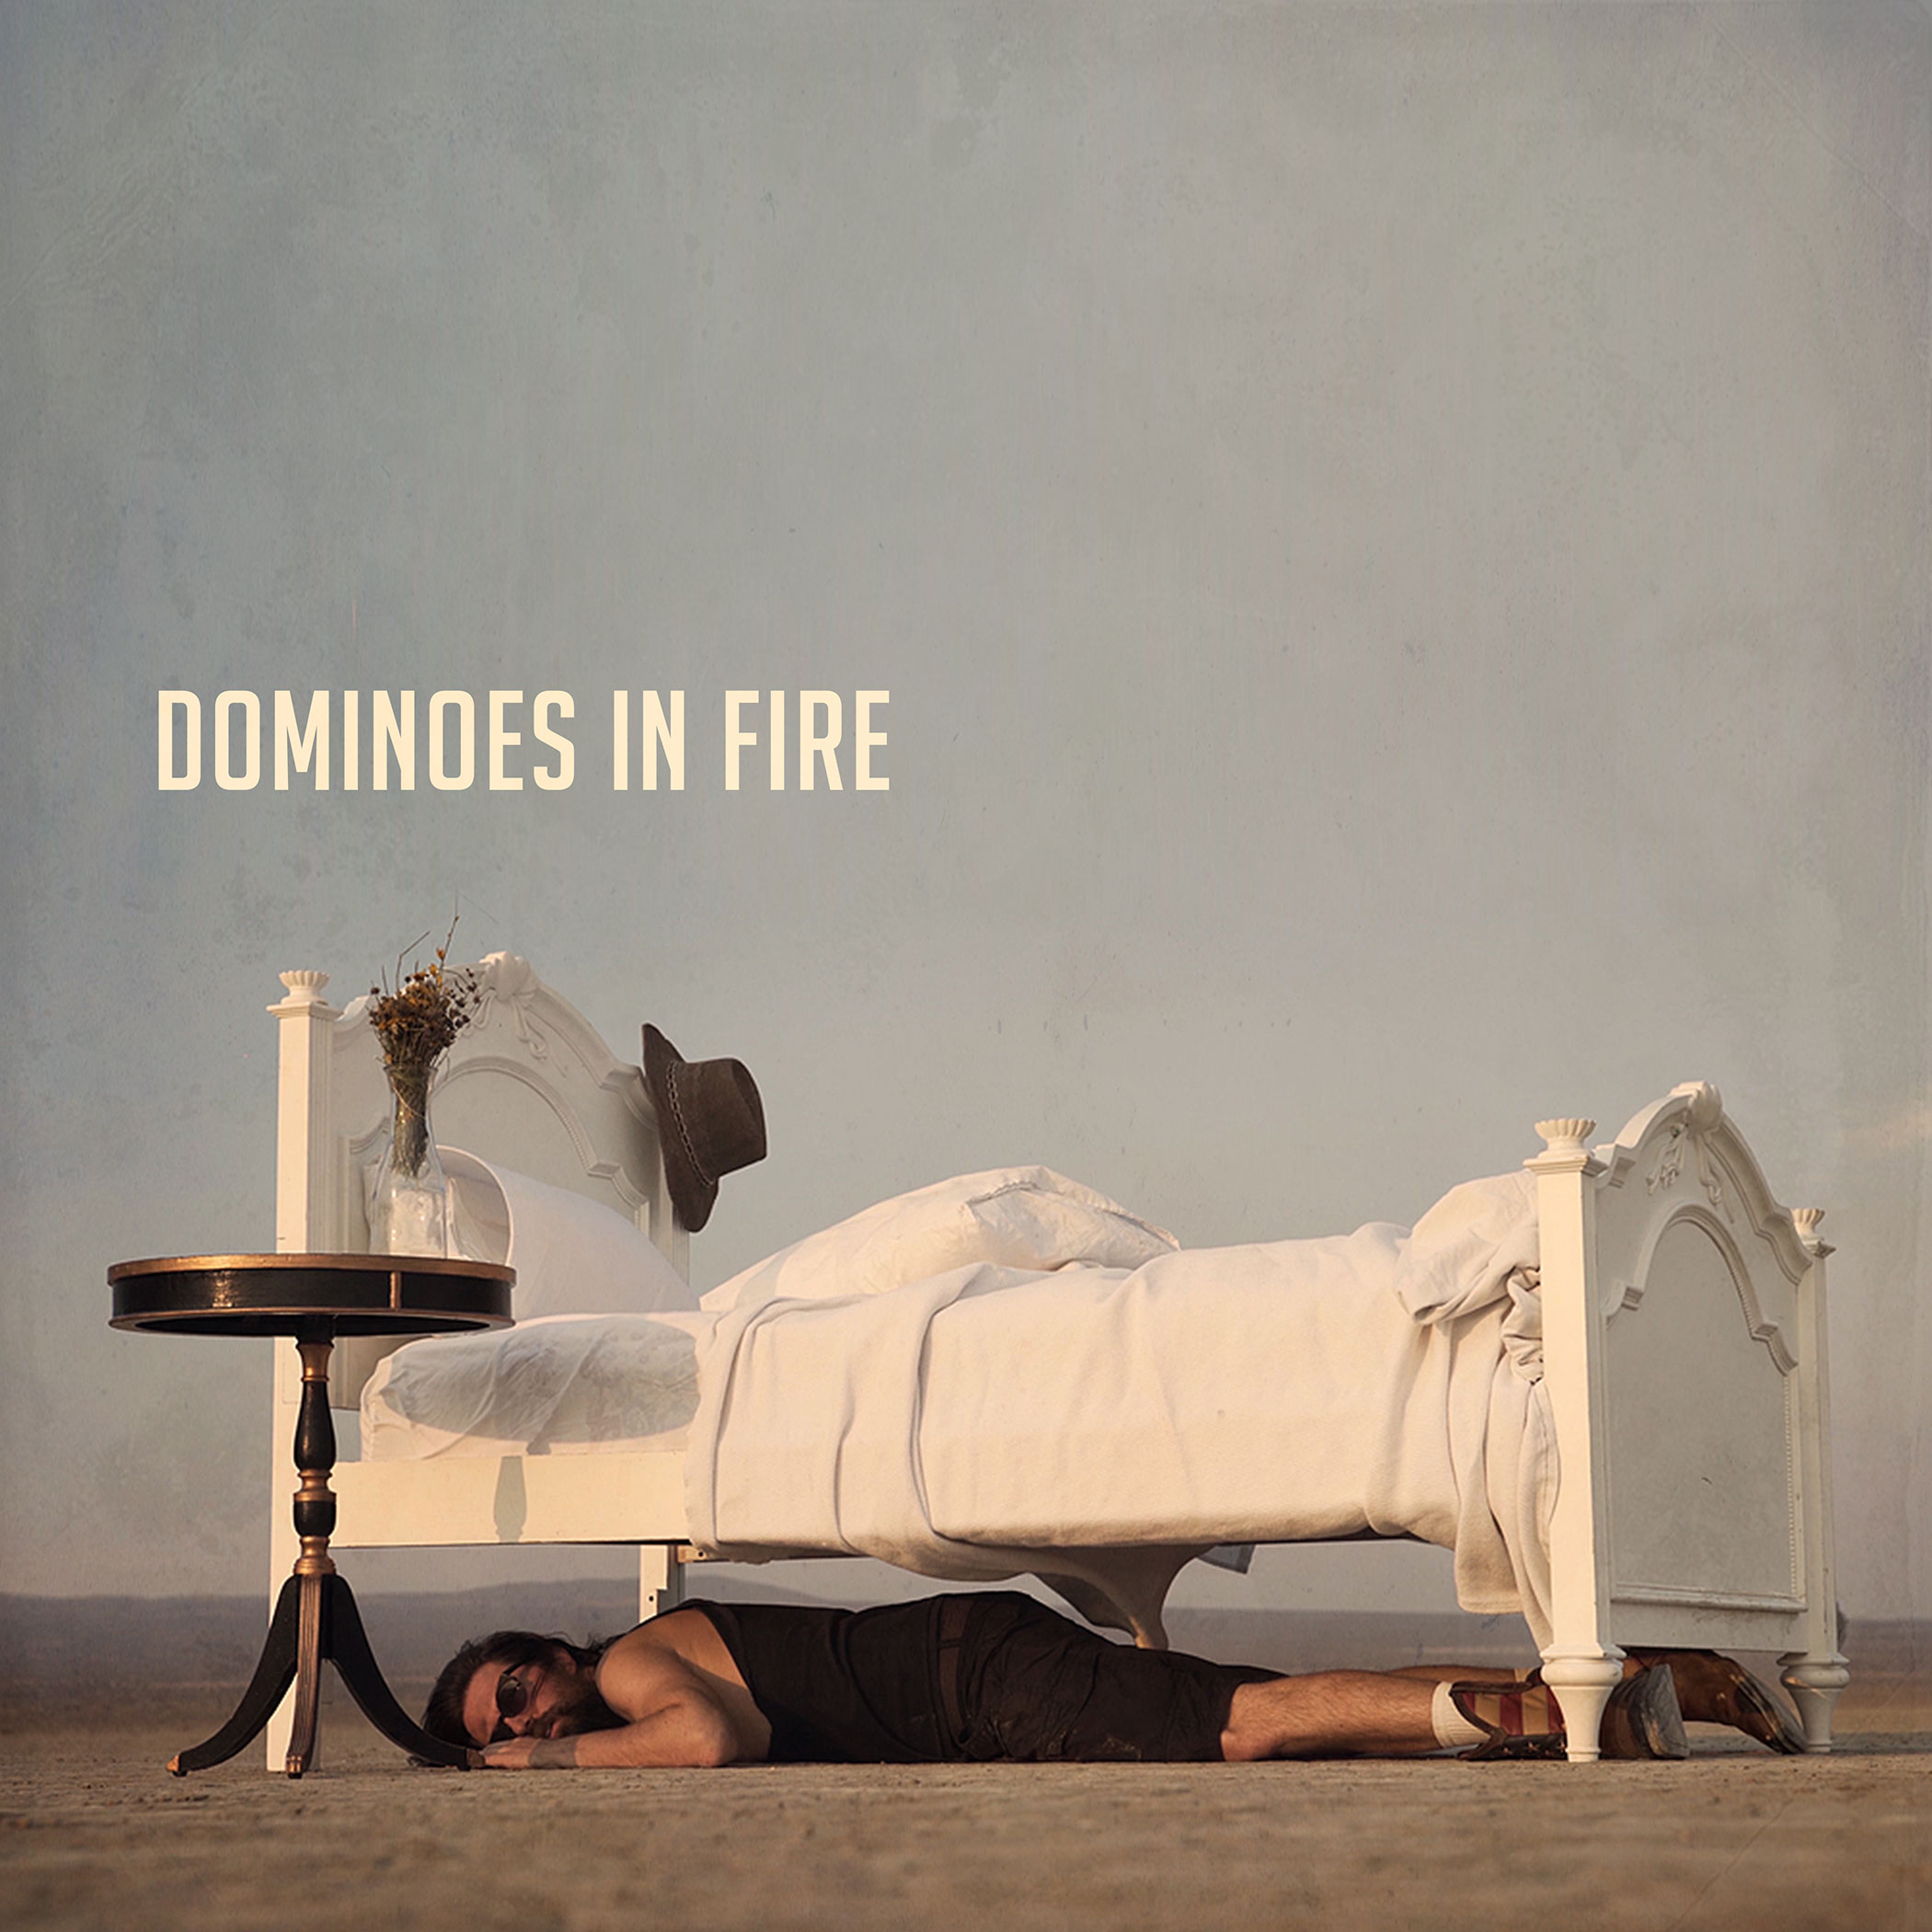 """""""Dominoes in Fire"""" is the fourth single (Release: 9.7.18) from Beard Bates' forthcoming album """"The World is Blown"""" (Nov 9, 2018). Music Video: Director: Beard Bates Director of Photography: Henrik Christofferson (Desert Scene) Director of Photography: Issac Alvarez (Poppy Field Scenes) Starring: Kelli Kickham & Beard Bates Song: Written, Performed and Produced by Beard Bates Mastered by Howie Weinberg Copyright and Published 2018 Studio Records Group America"""